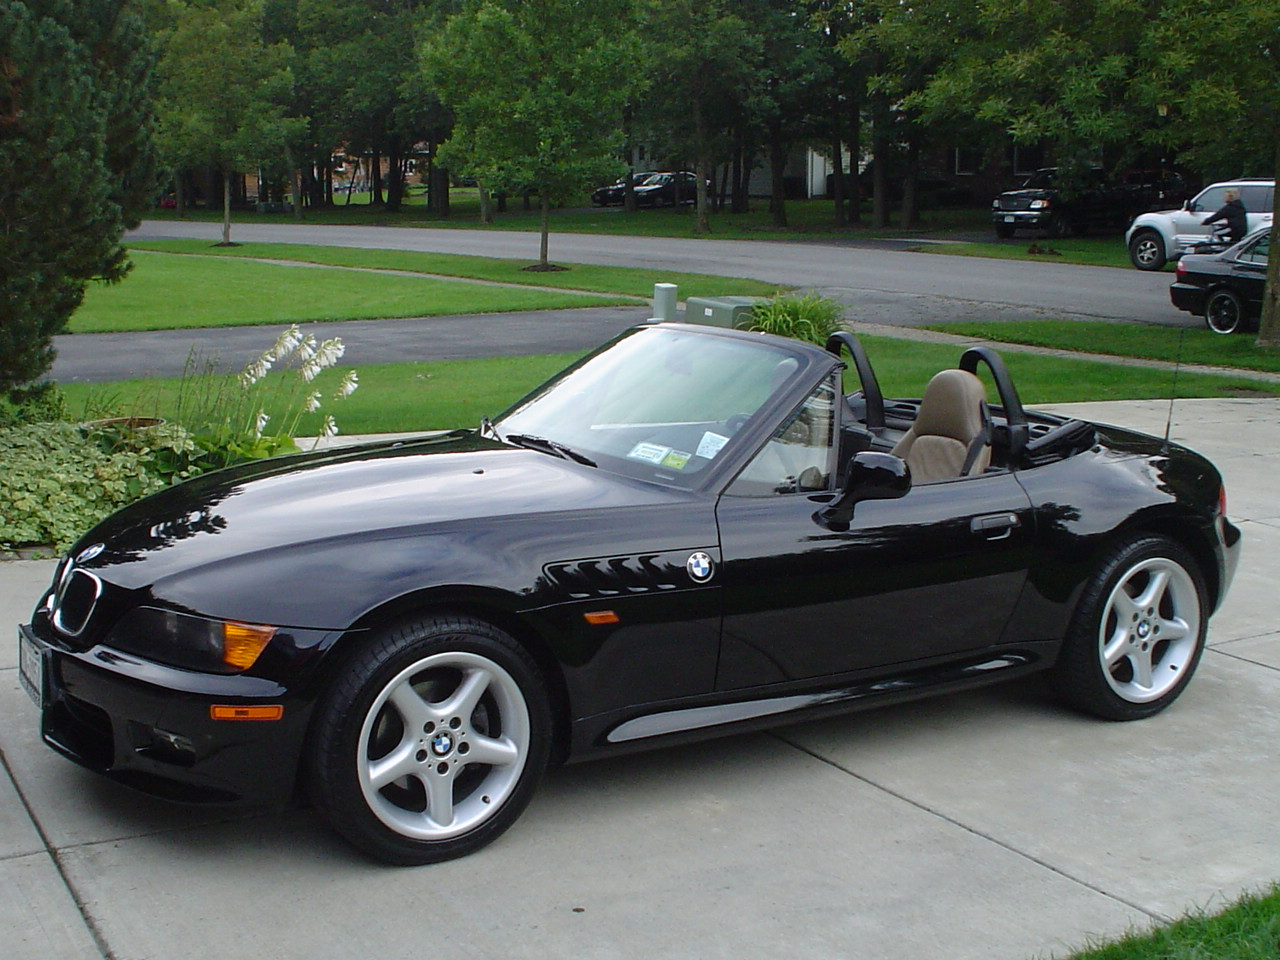 Bmw Z3 1998 Review Amazing Pictures And Images Look At